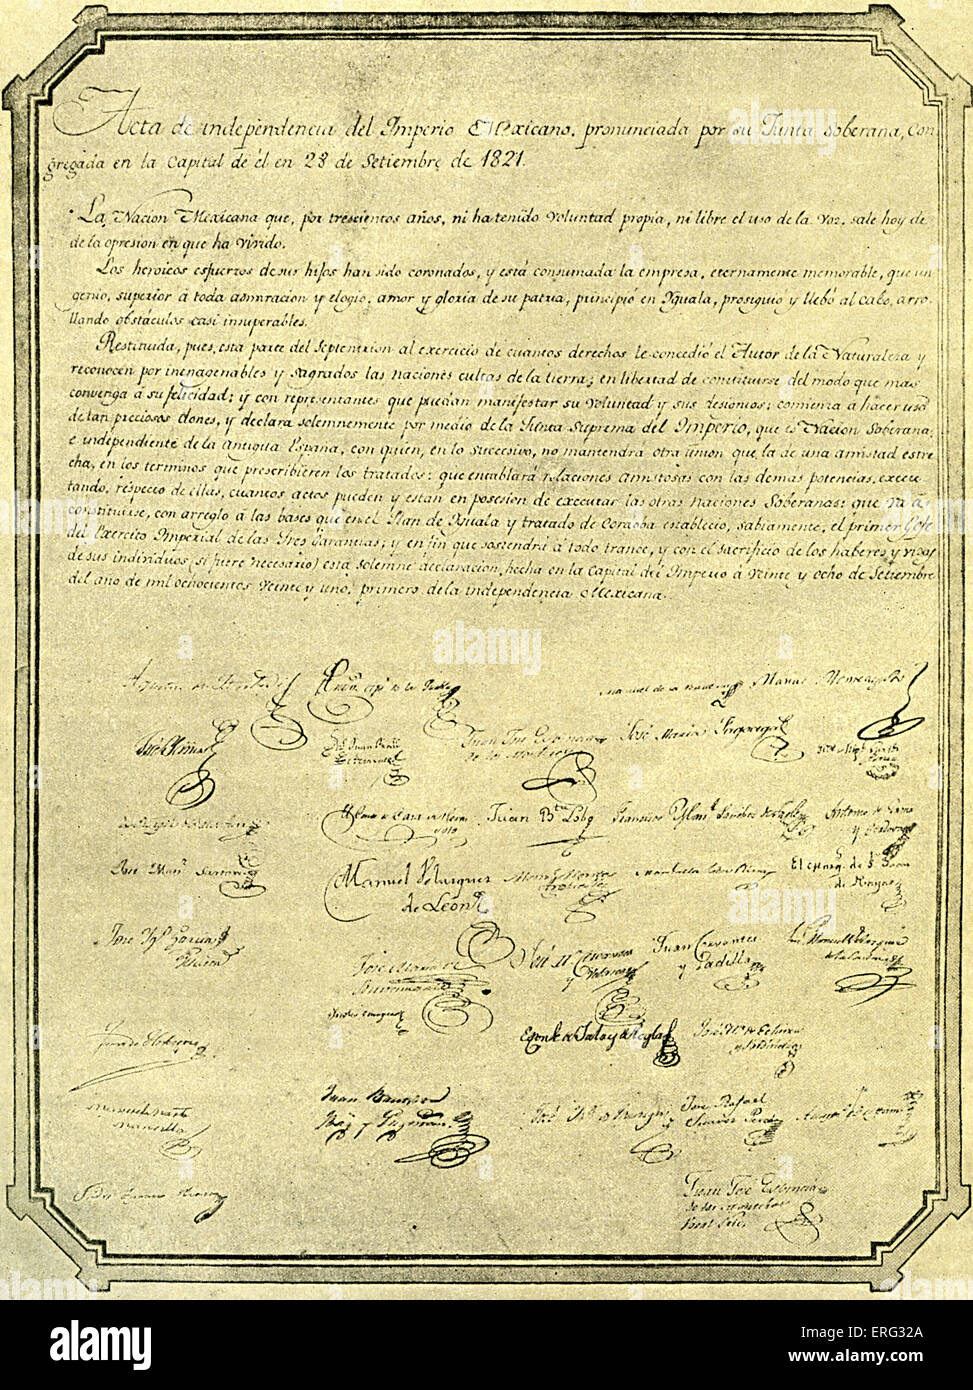 Mexican Declaration of Independence, 28 September 1820. - Stock Image